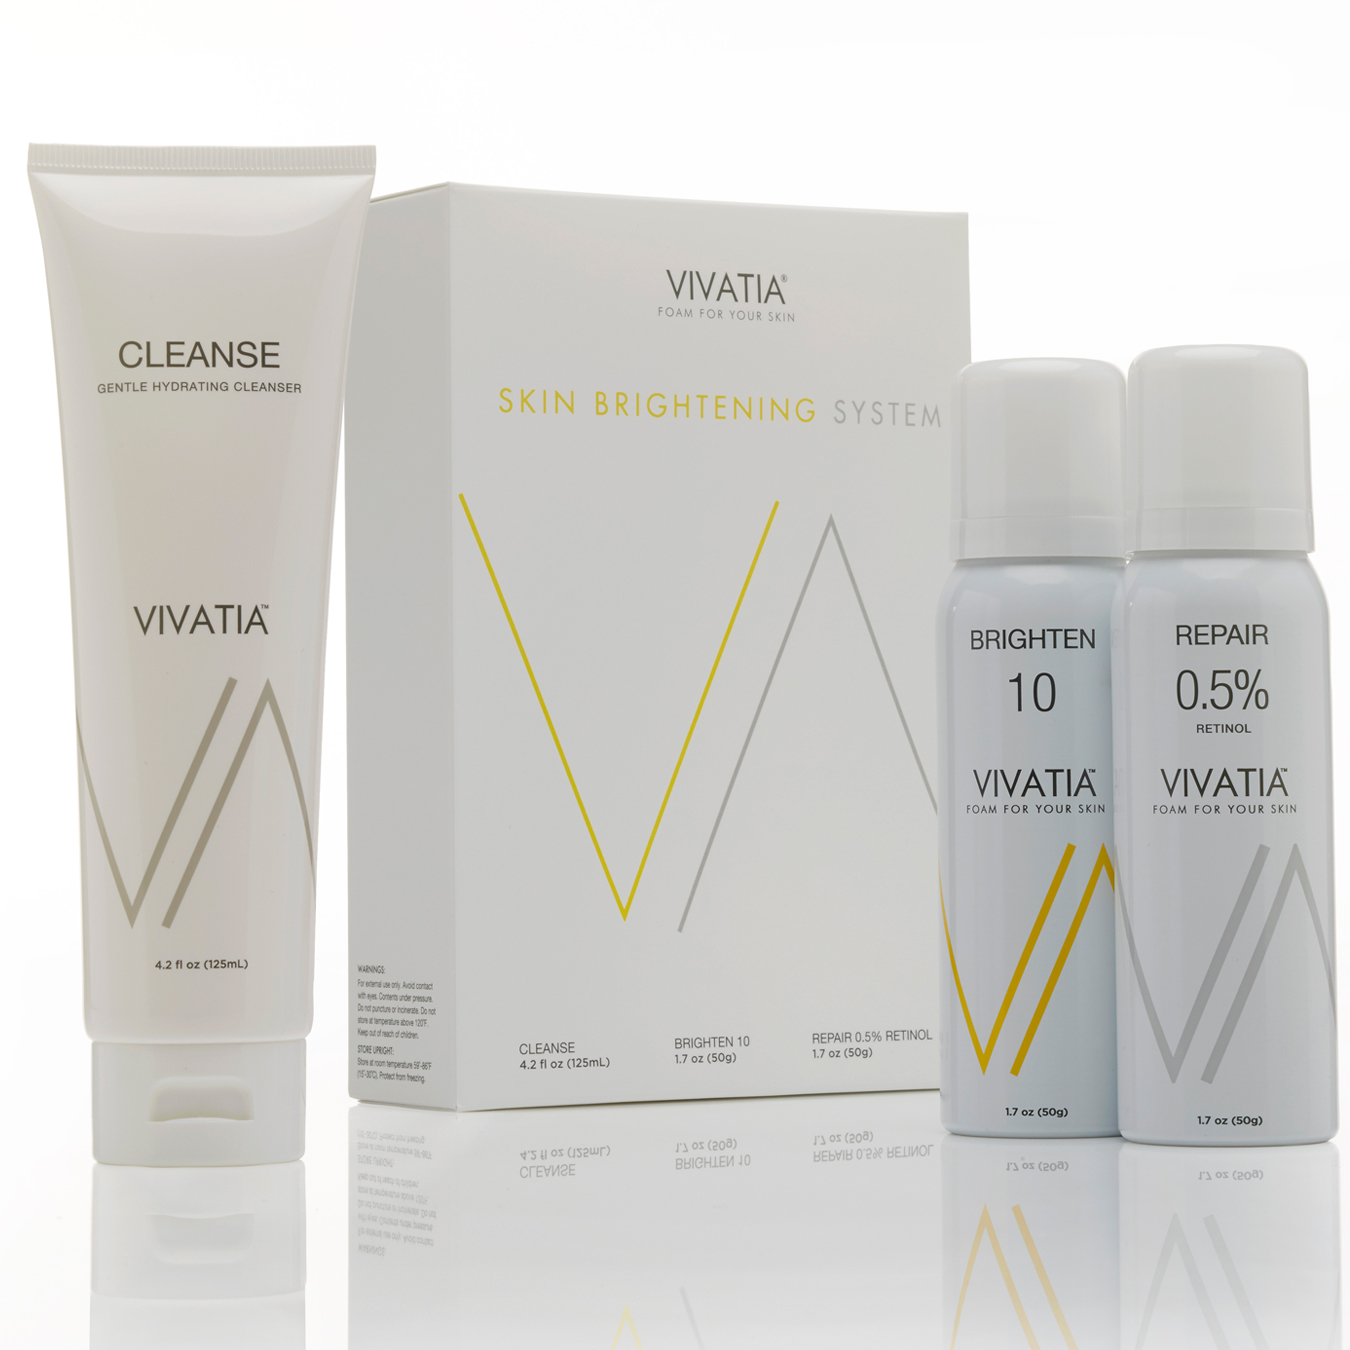 Vivatia Skin Brightening System